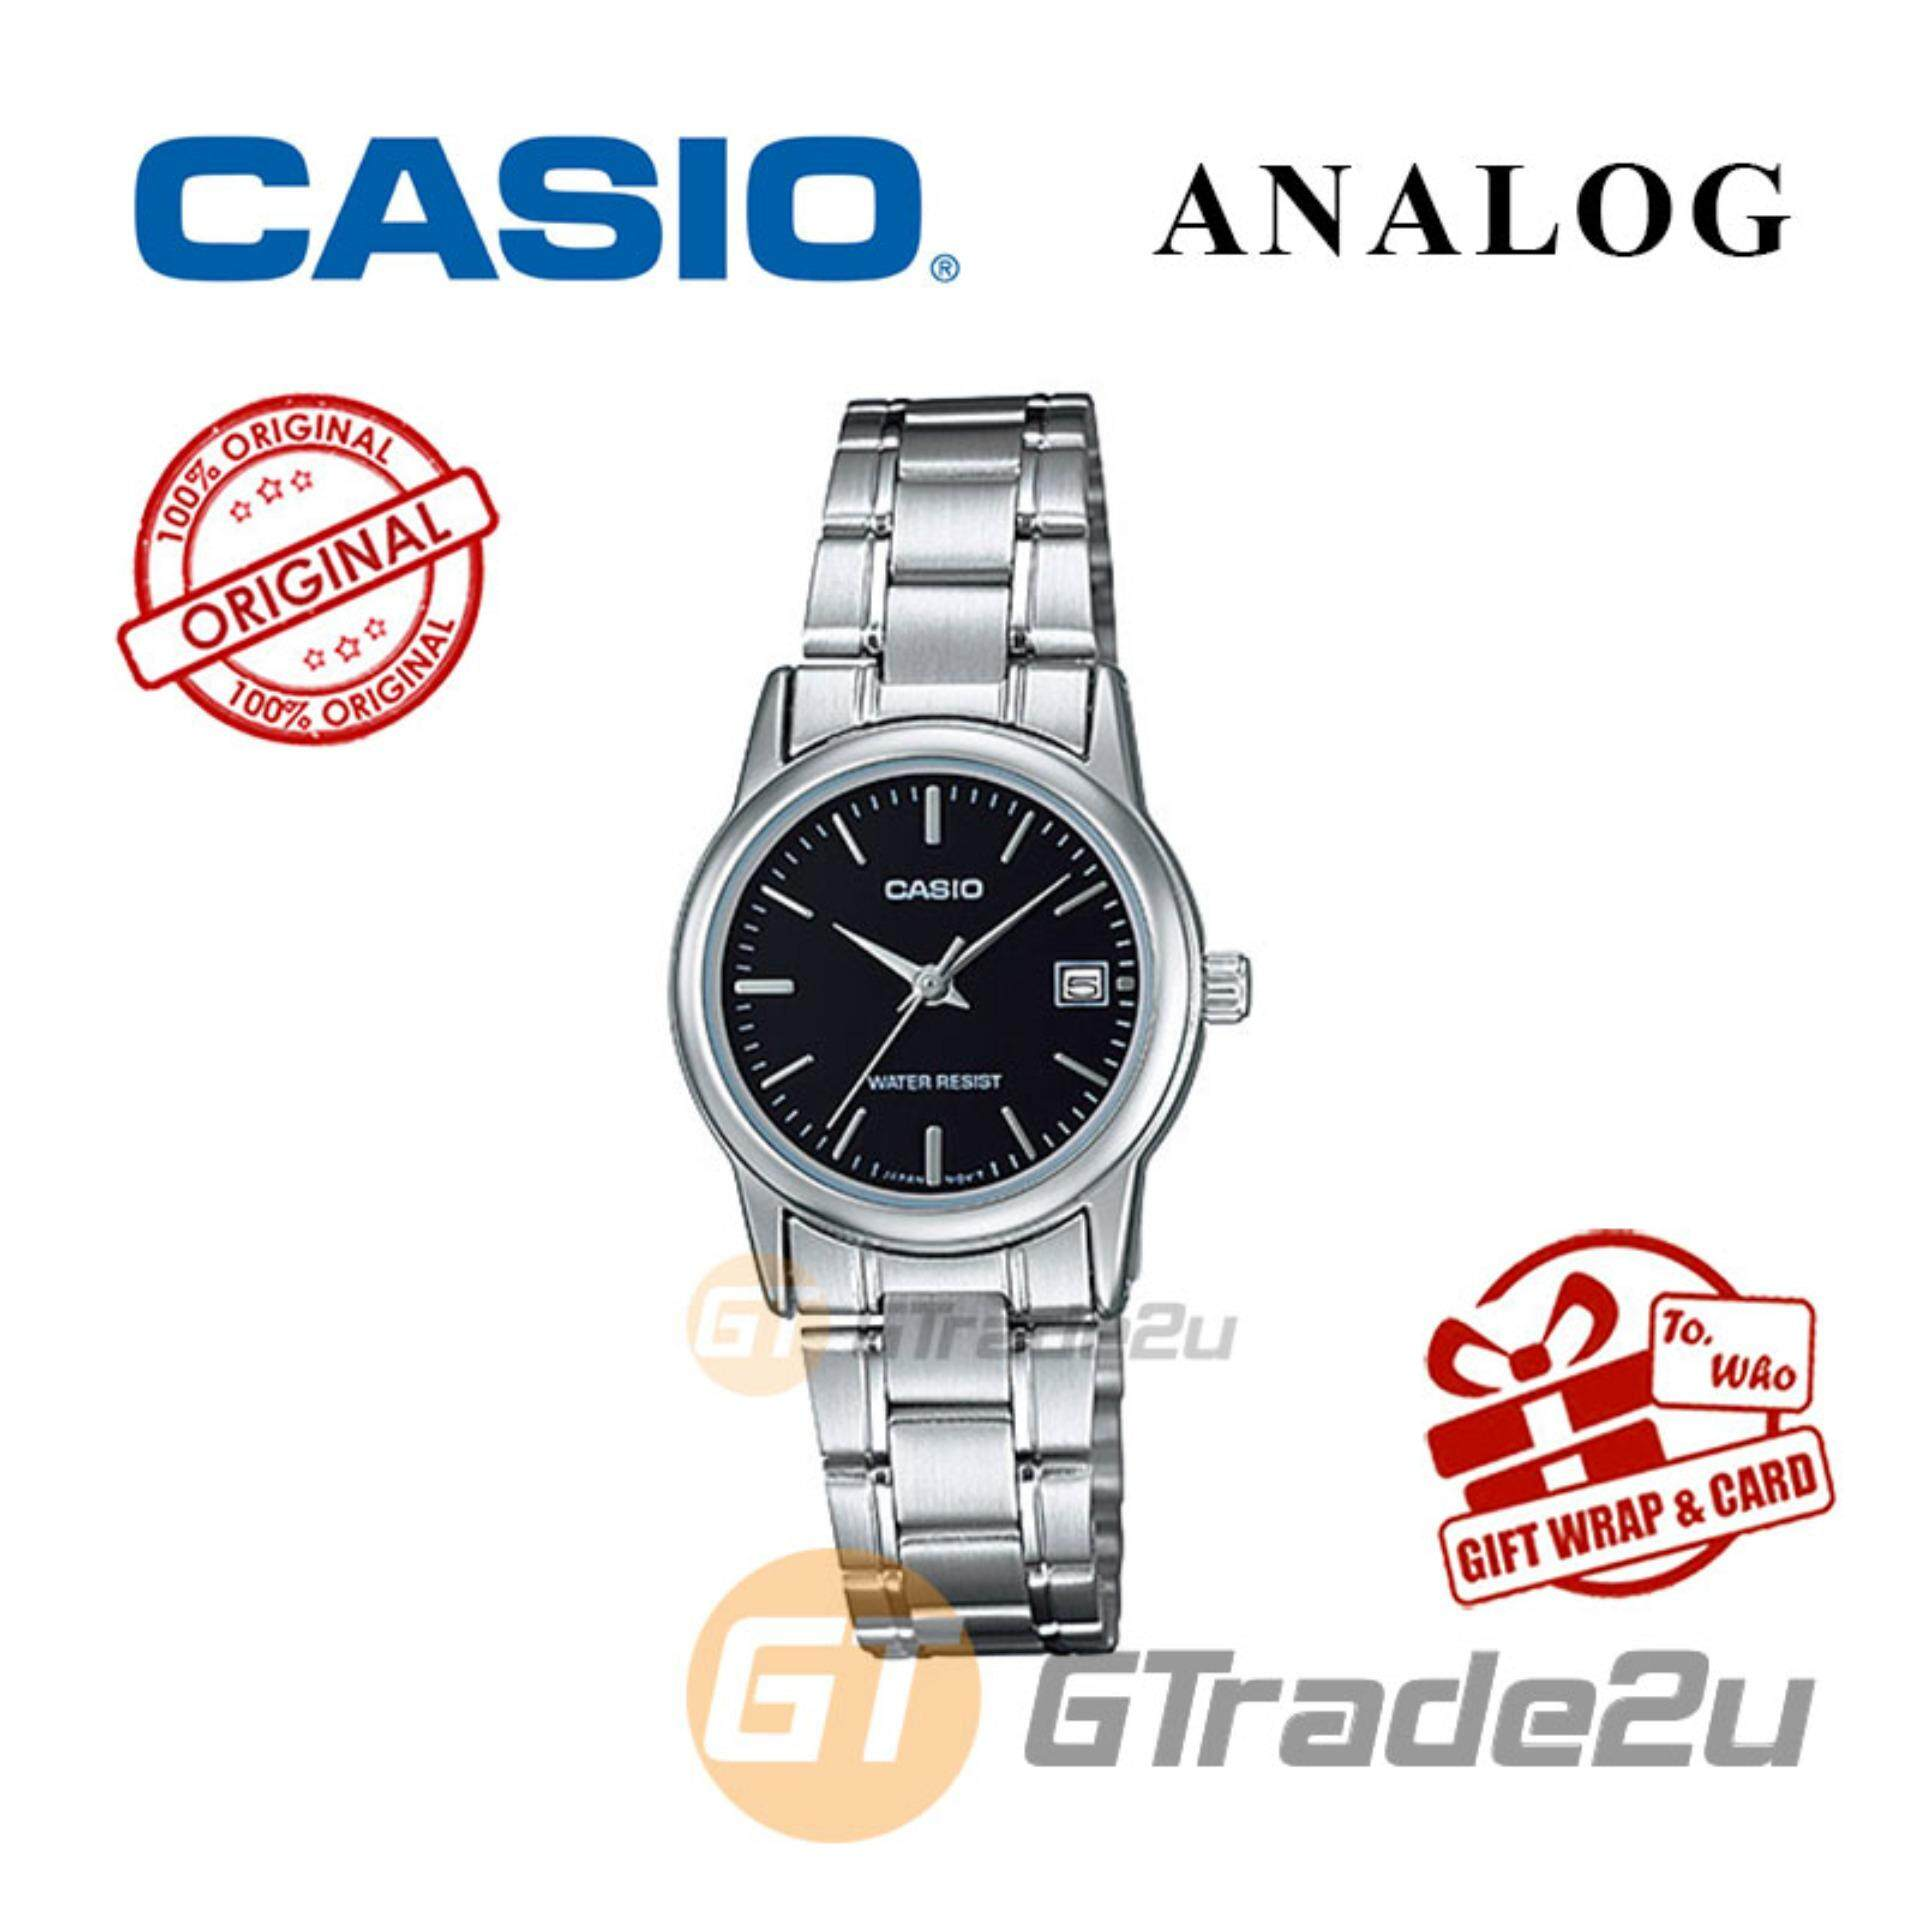 Casio Products For The Best Price In Malaysia G Shock Series Ga 100 Jam Tangan Pria Strap Resin Standard Ltp V002d 1av Analog Ladies Watch Date Display Wr